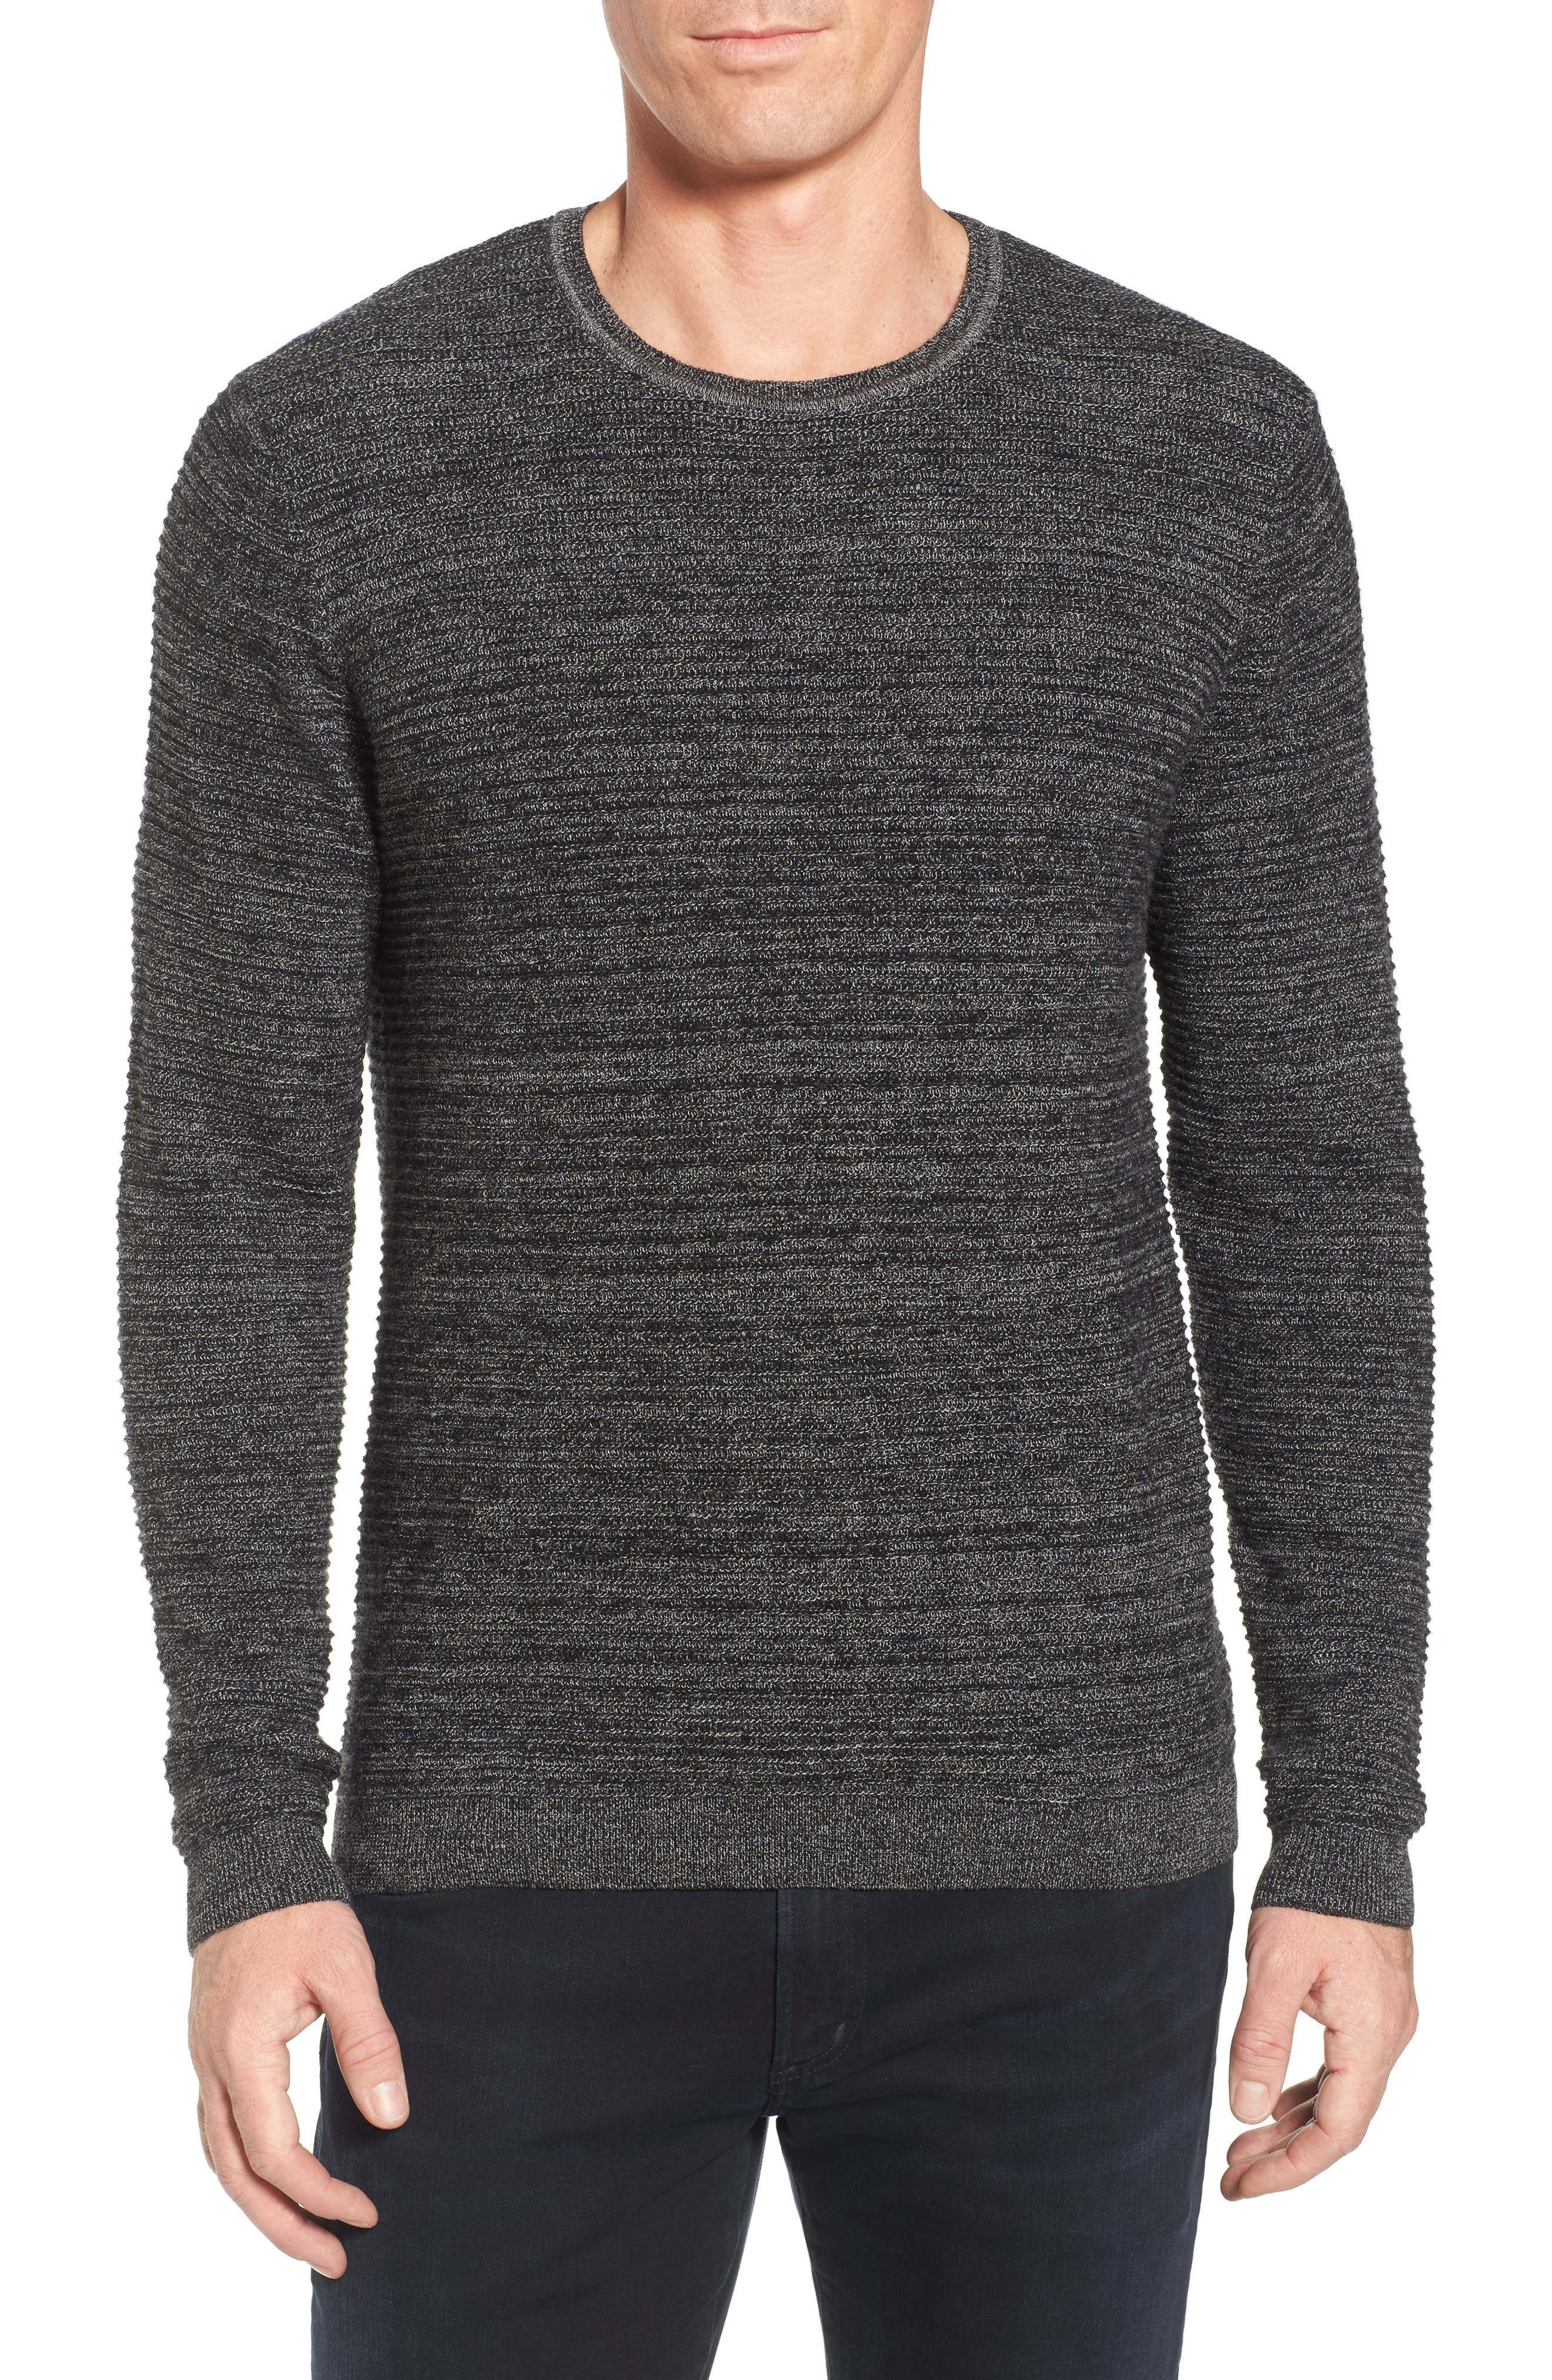 Ottoman Wool Blend Sweater,                         Main,                         color,